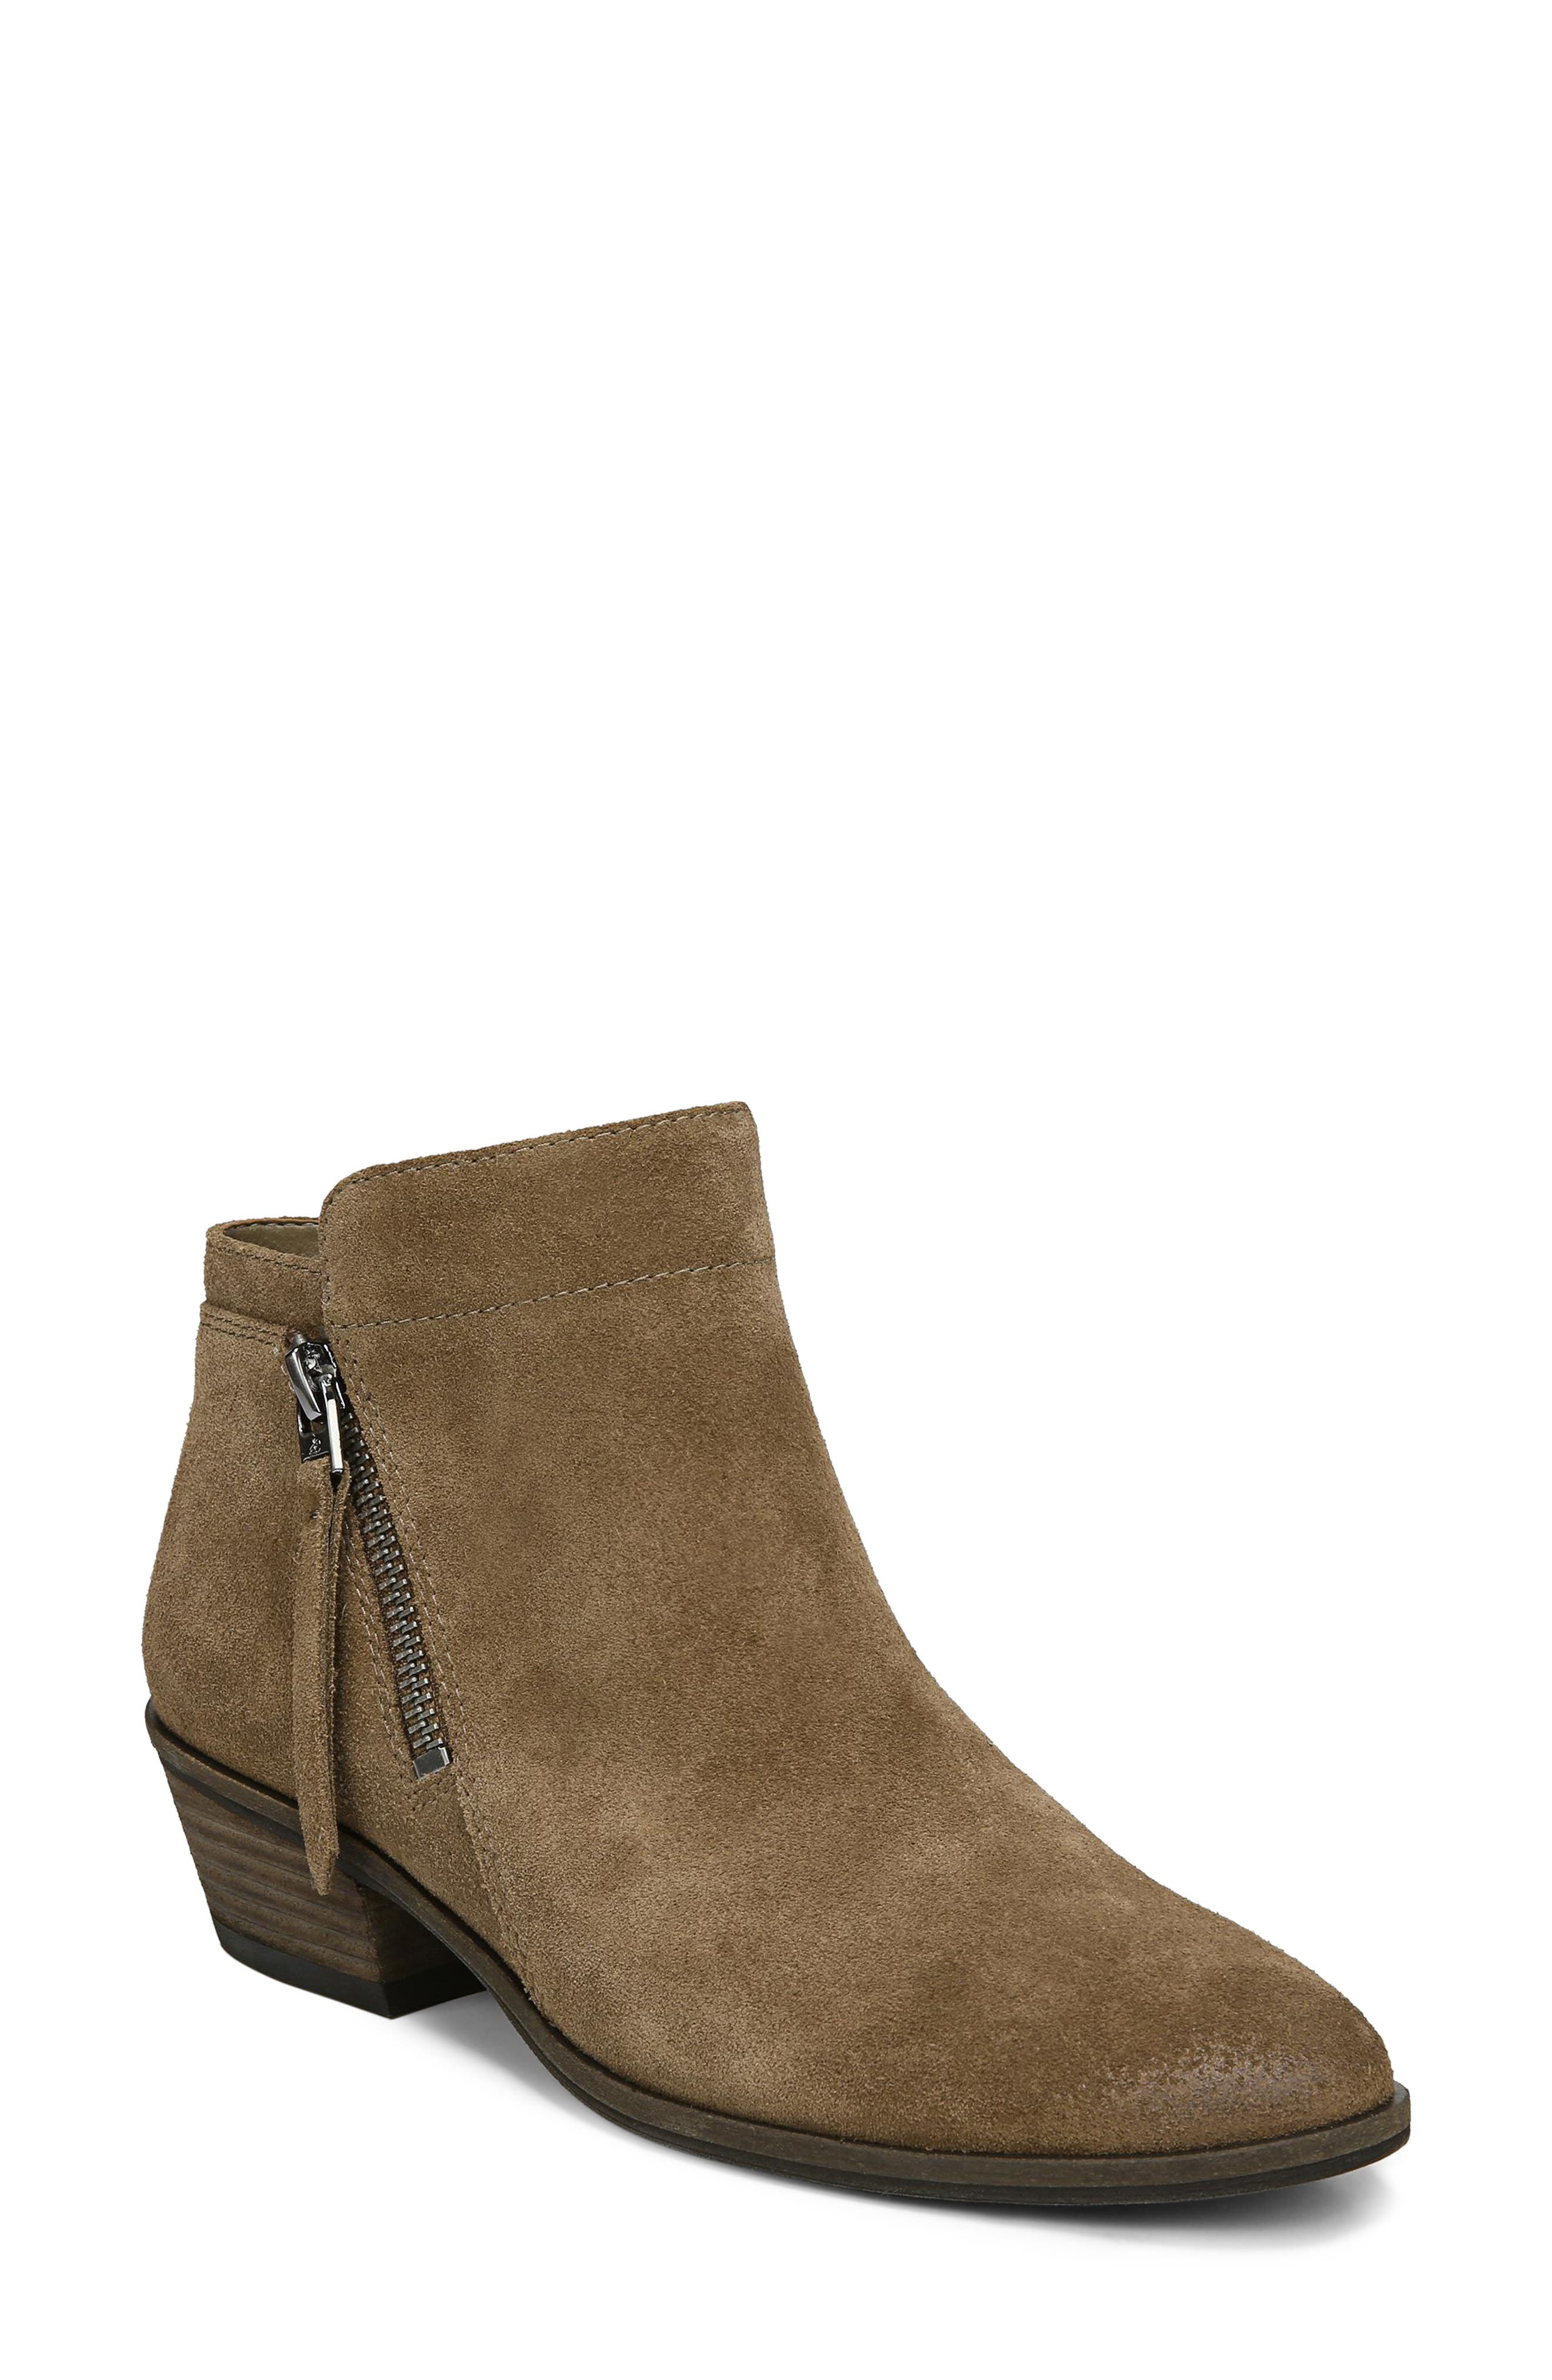 Packer Bootie,                         Main,                         color, DARK TAUPE SUEDE LEATHER